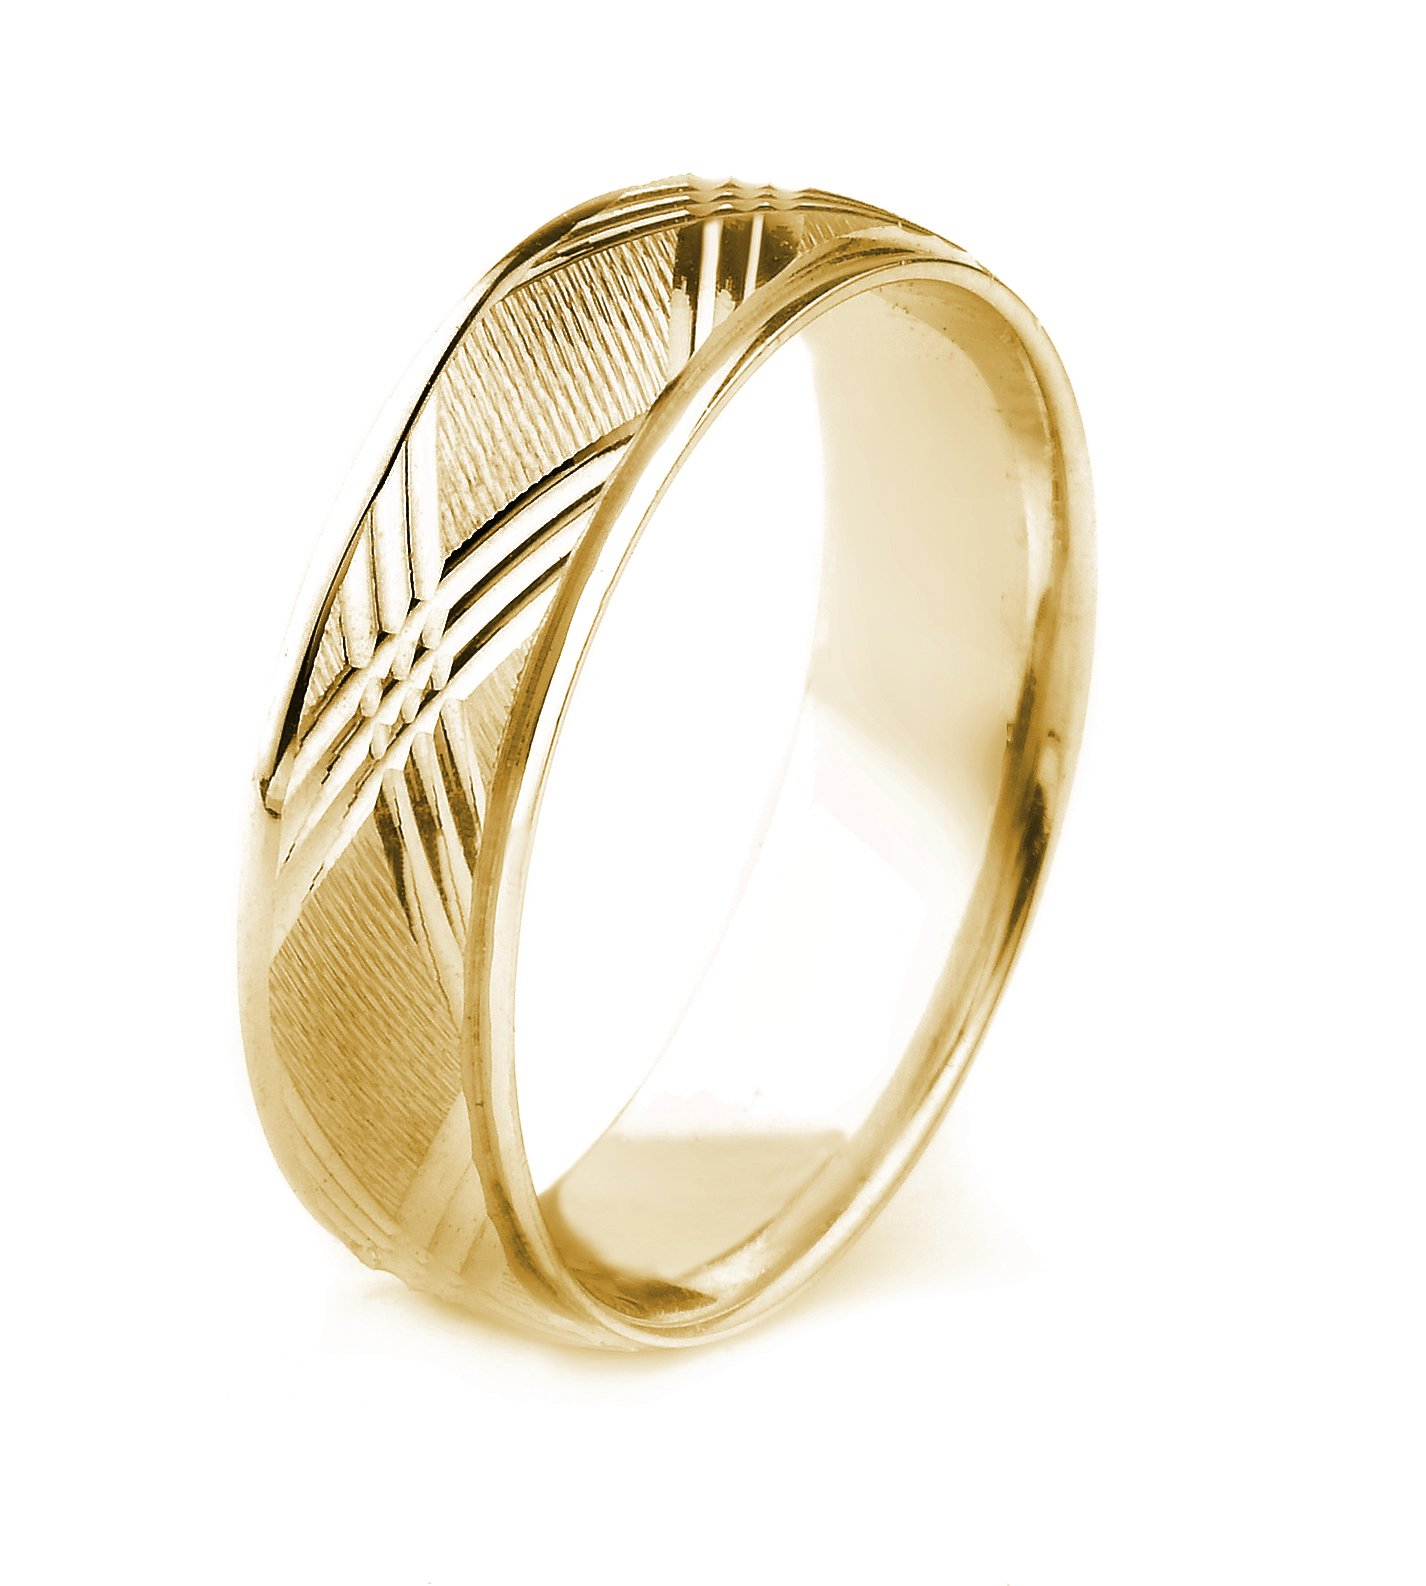 14k Gold Men's Comfort-Fit Carved Wedding Band with Cross Cut Center and Polished Edges (8mm)